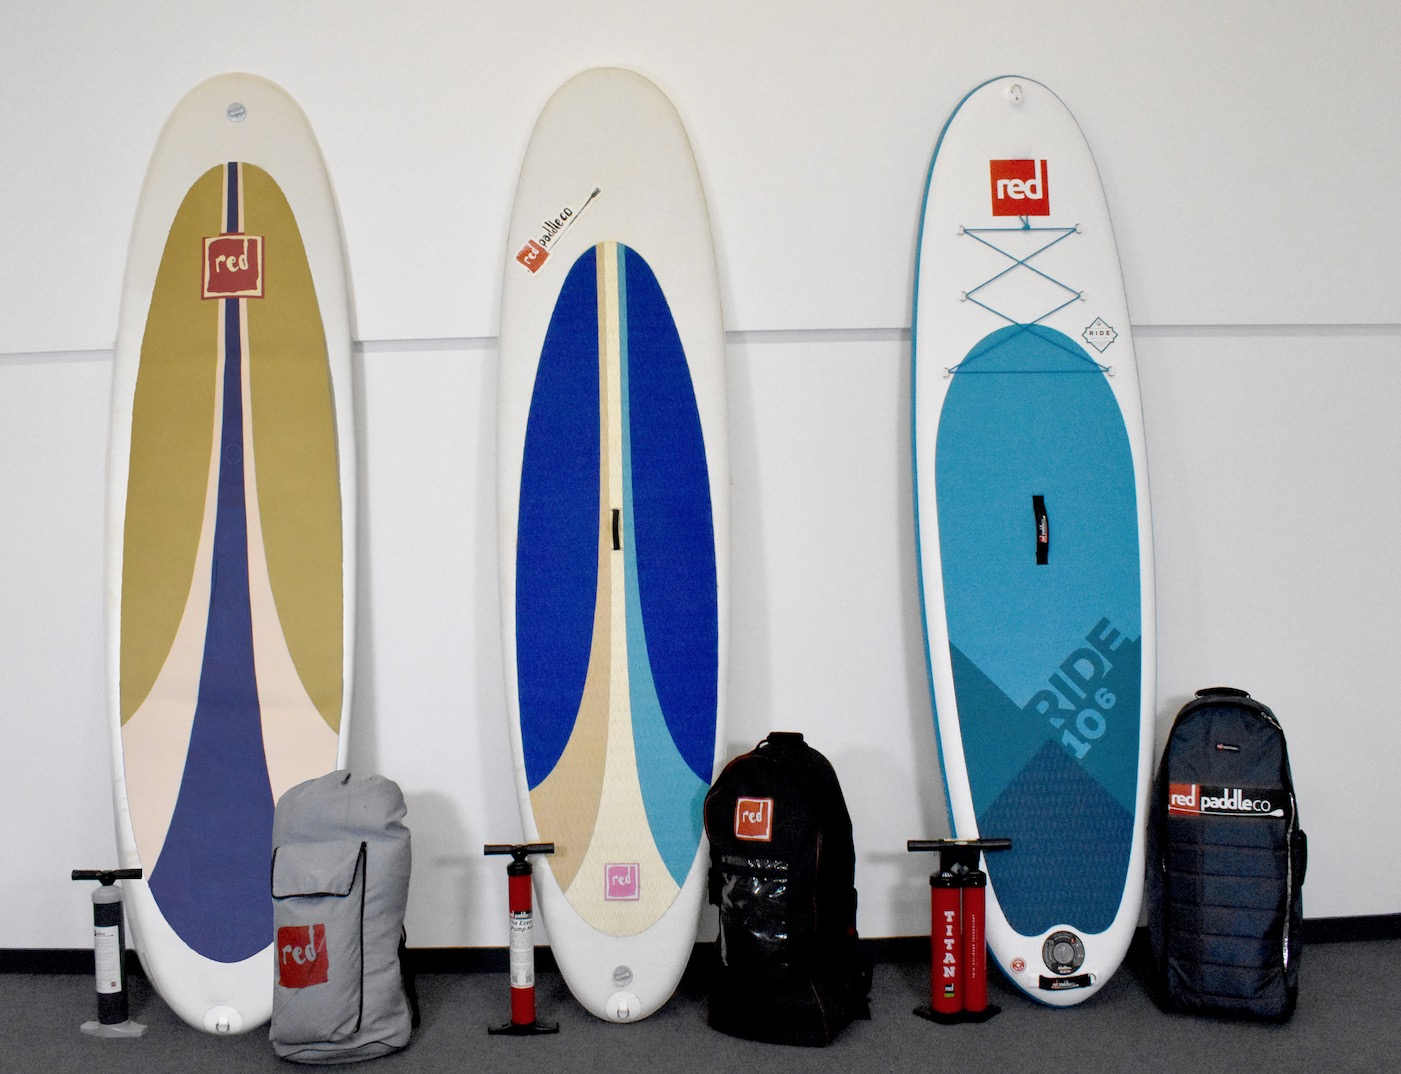 Red Paddle Co 10th anniversary